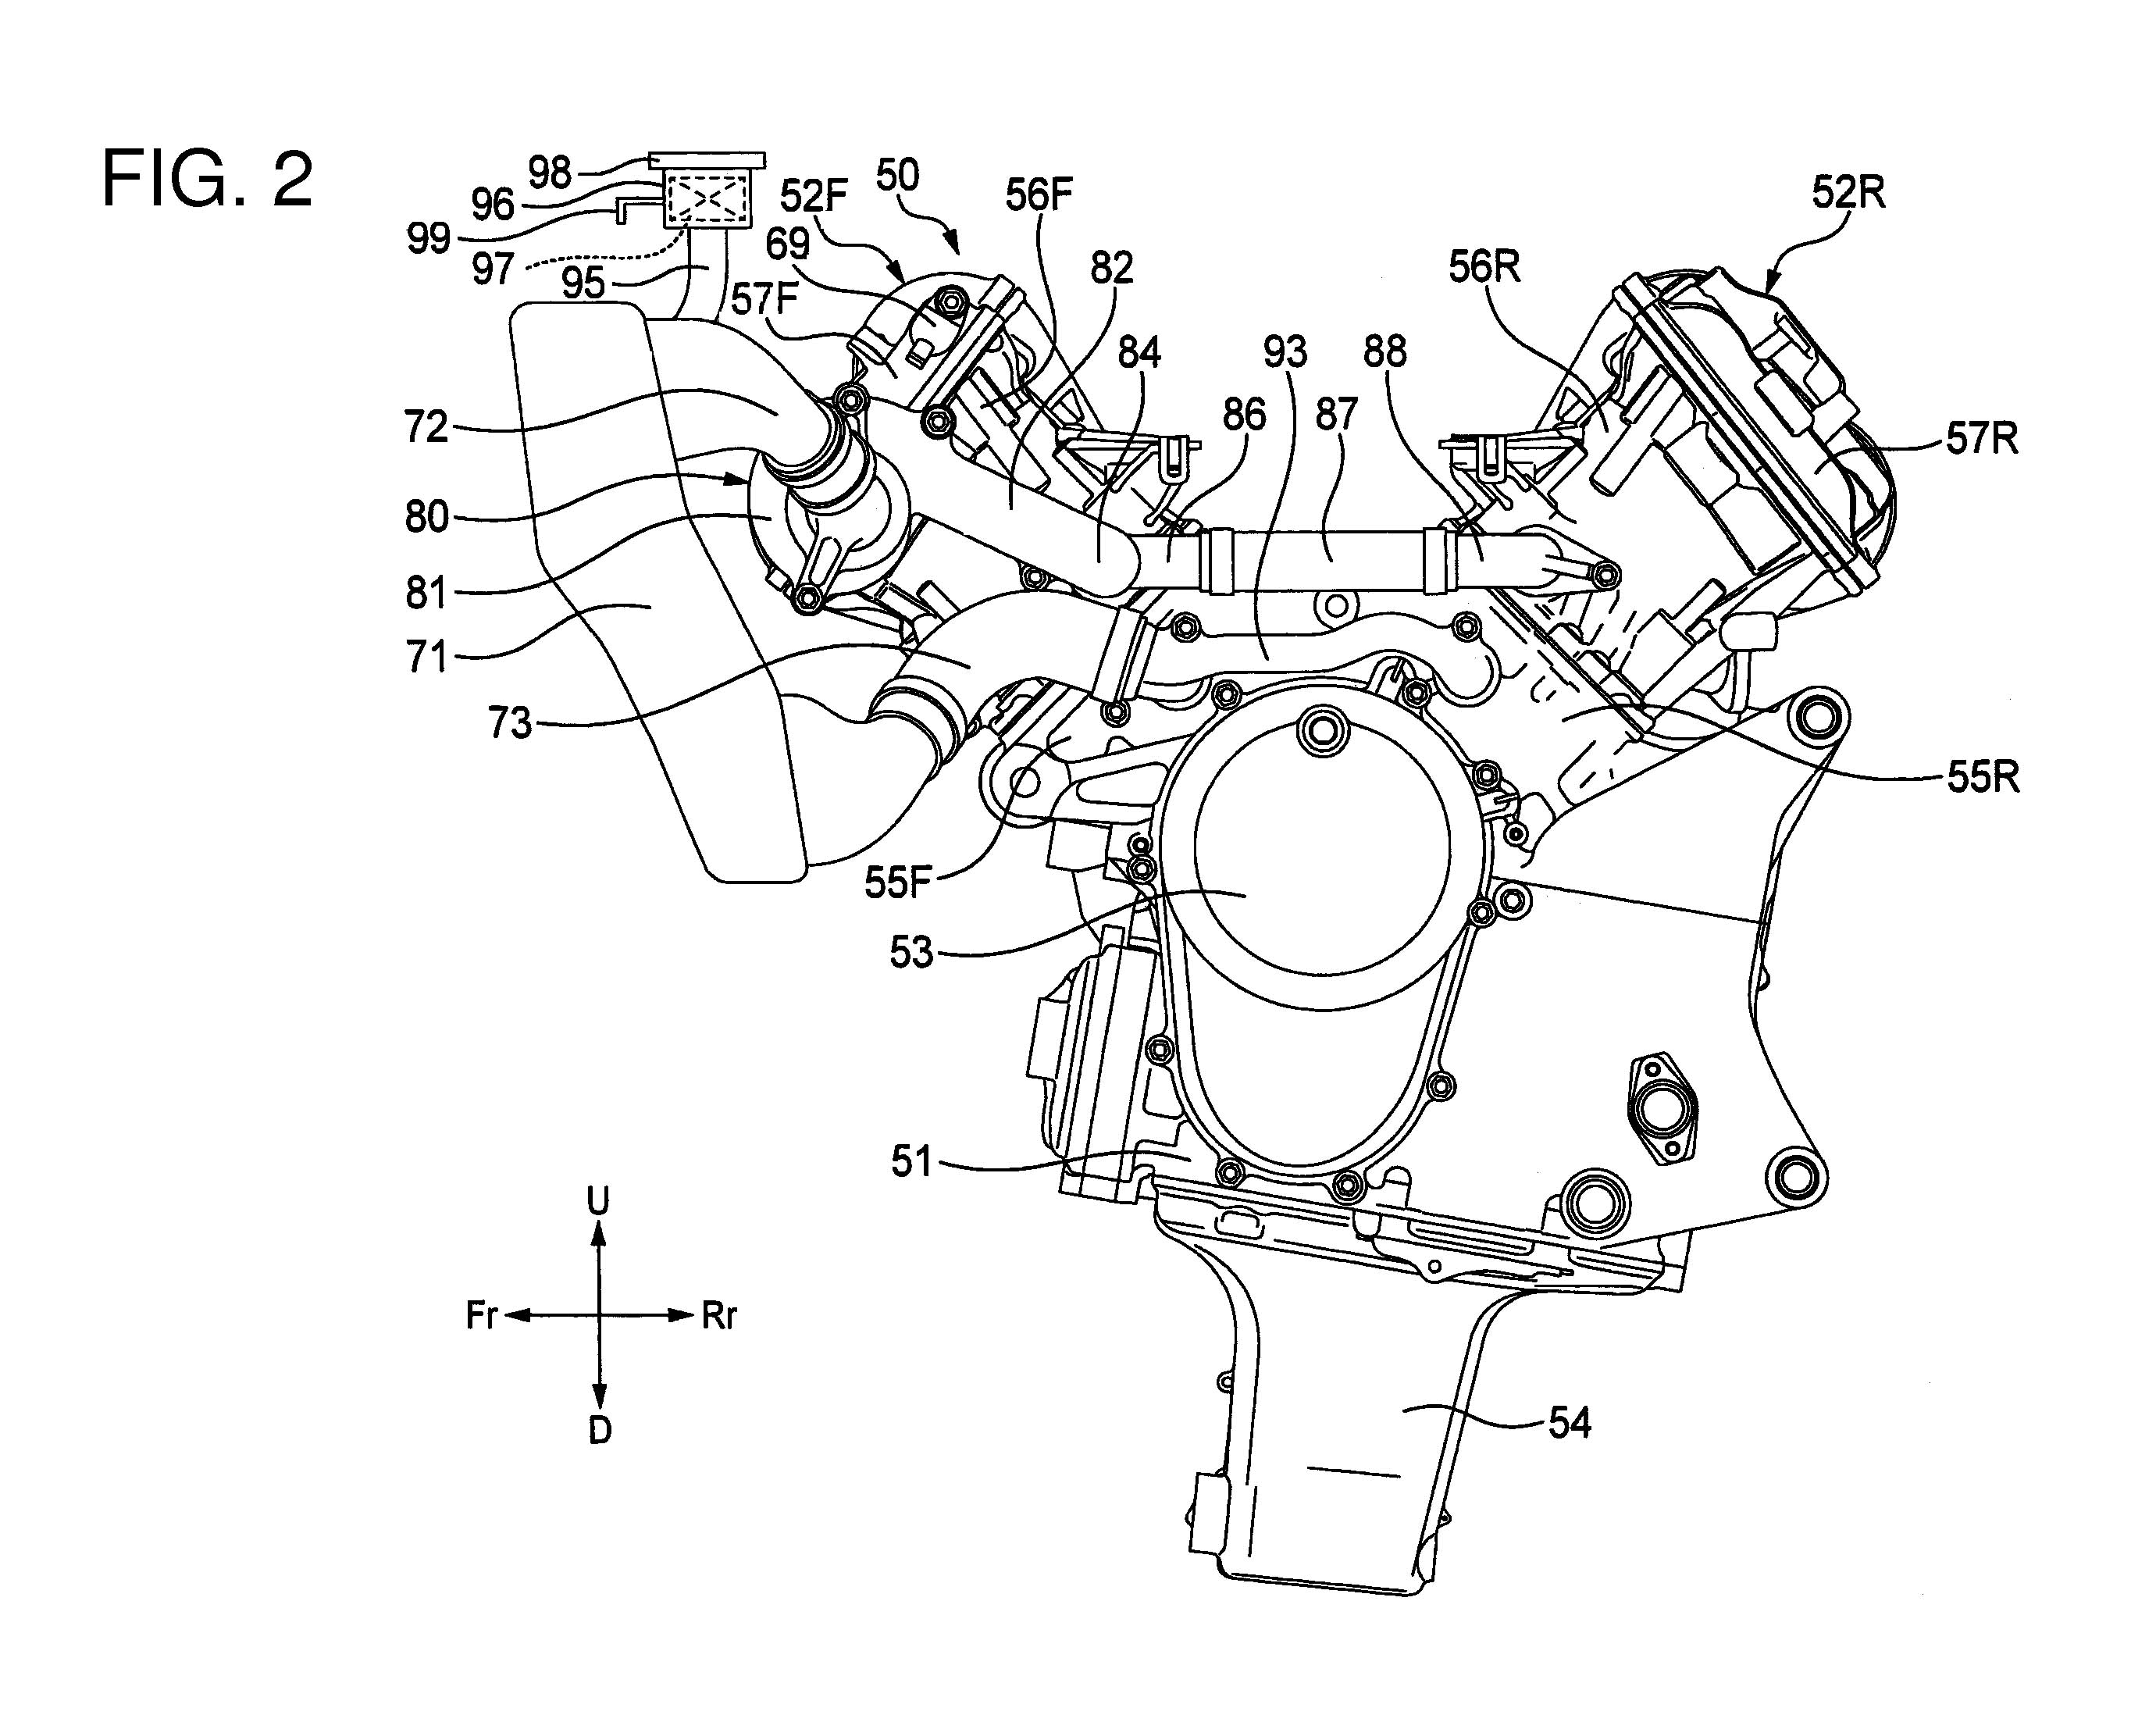 Engine Drawing At Free For Personal Use Ford 460 Marine Diagram 2761x2196 Honda V4 Superbike Outed In Patent Photos